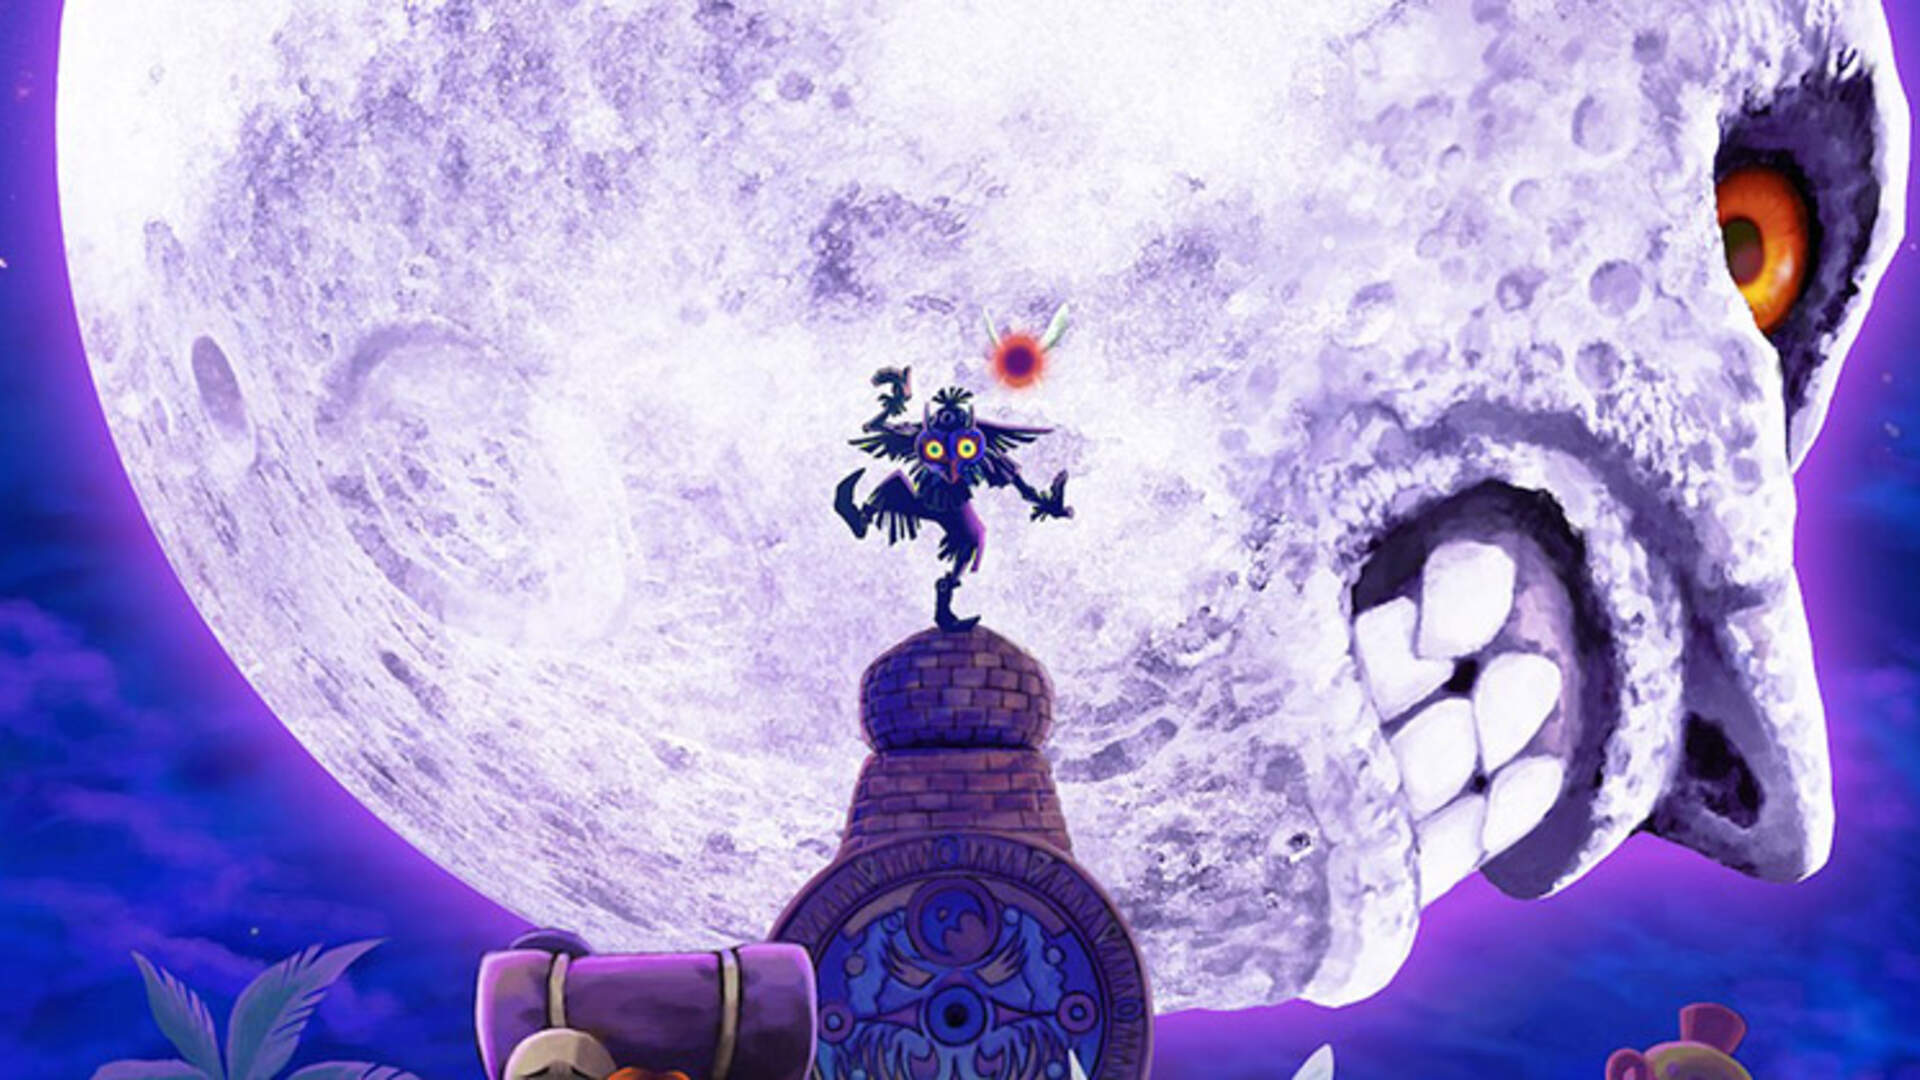 The Legend of Zelda Majora's Mask 3D Review: Rewind to a More Daring Time